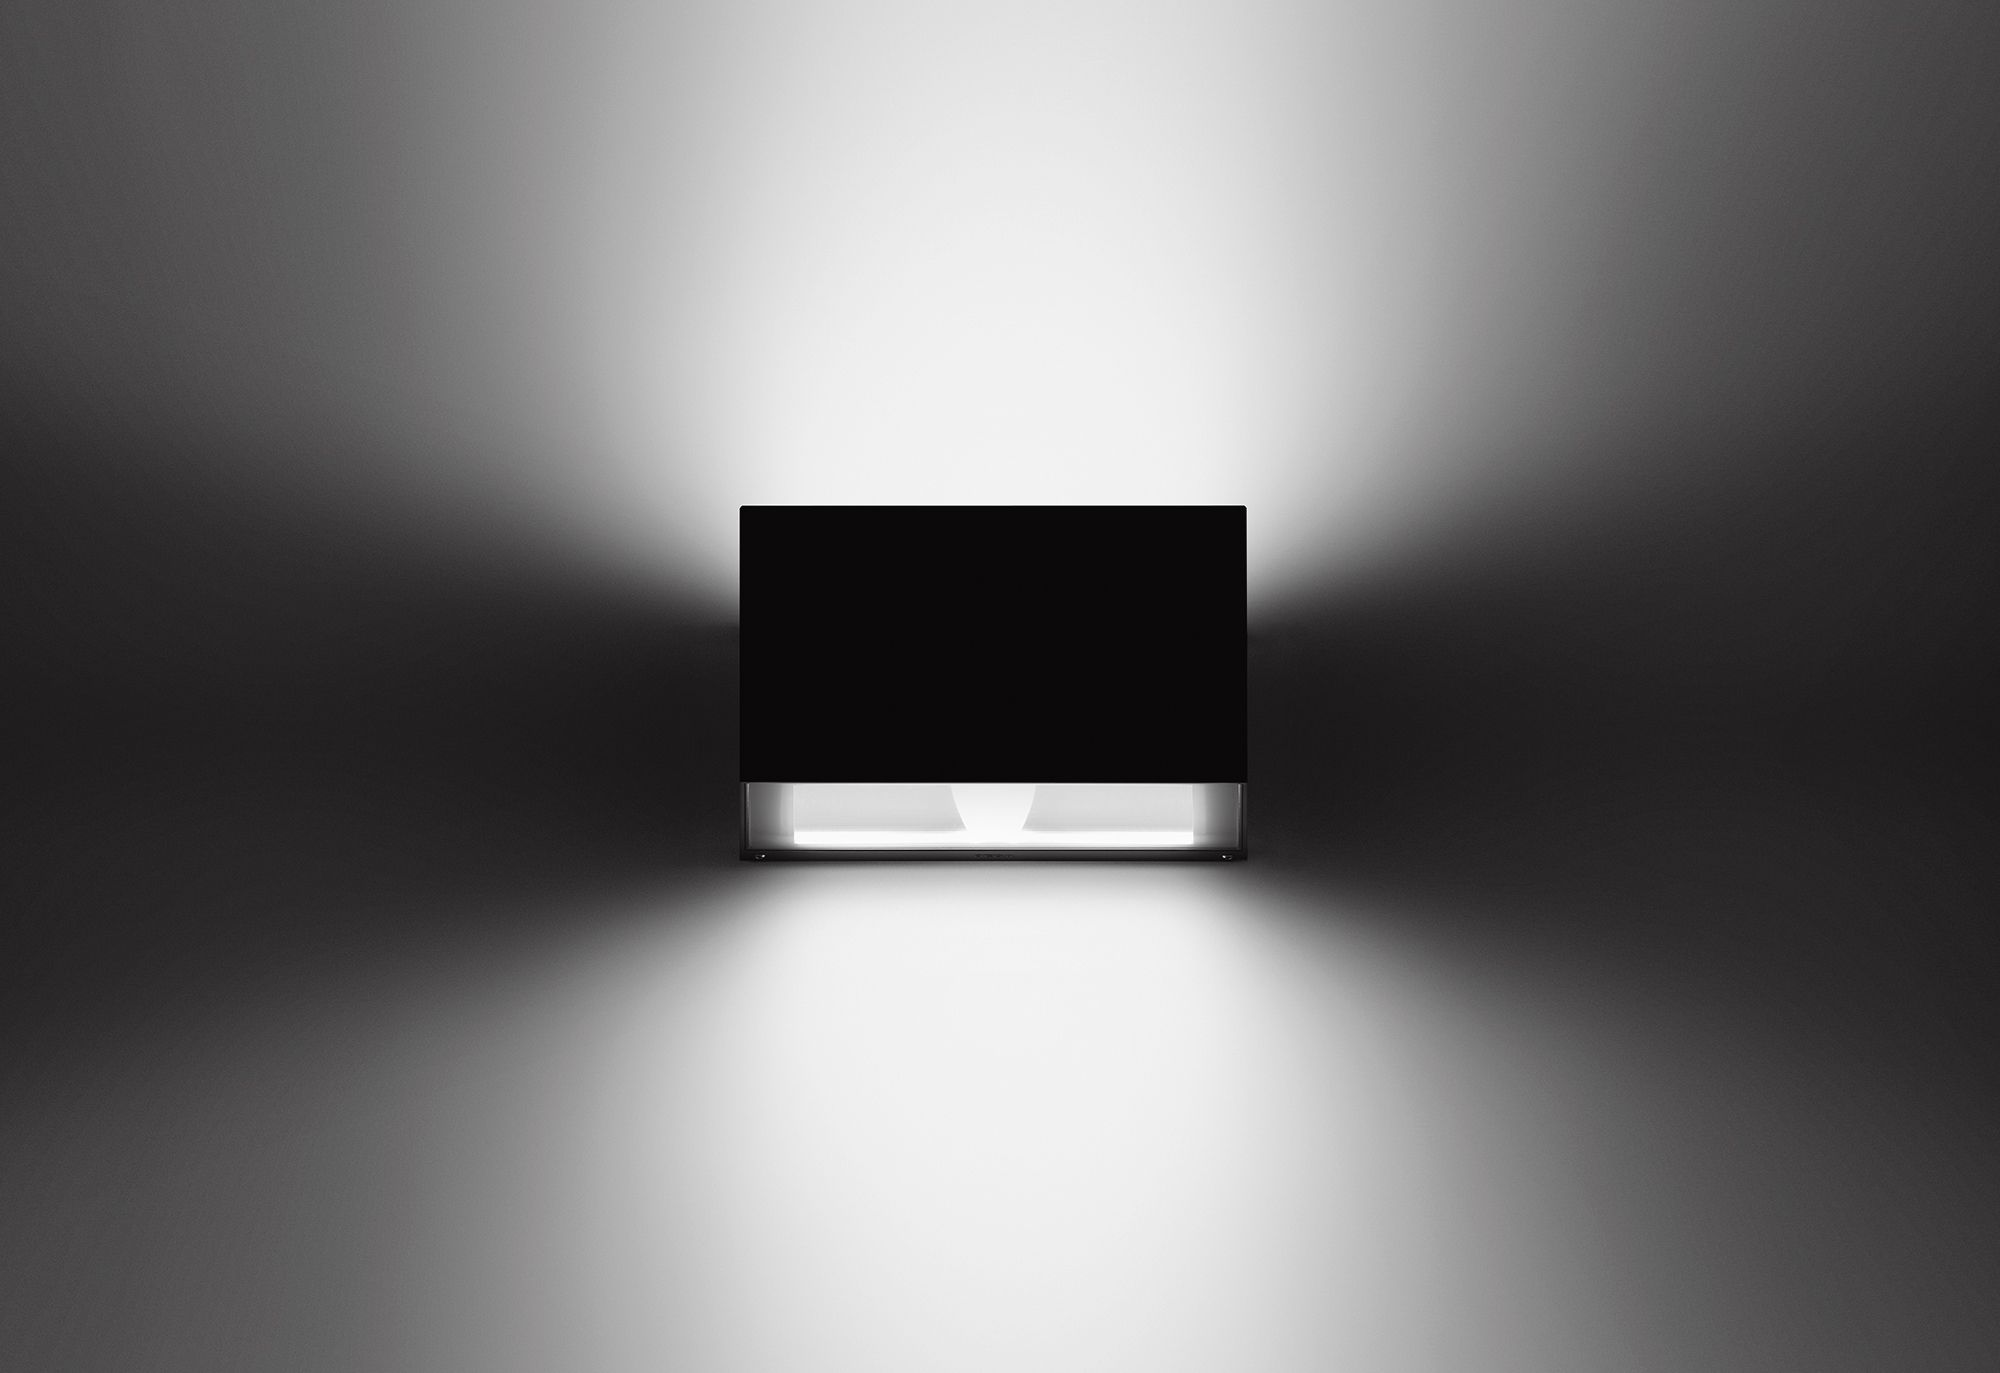 Luminaire Indirect avec led wall luminaire; designed for direct/indirect lighting effects in